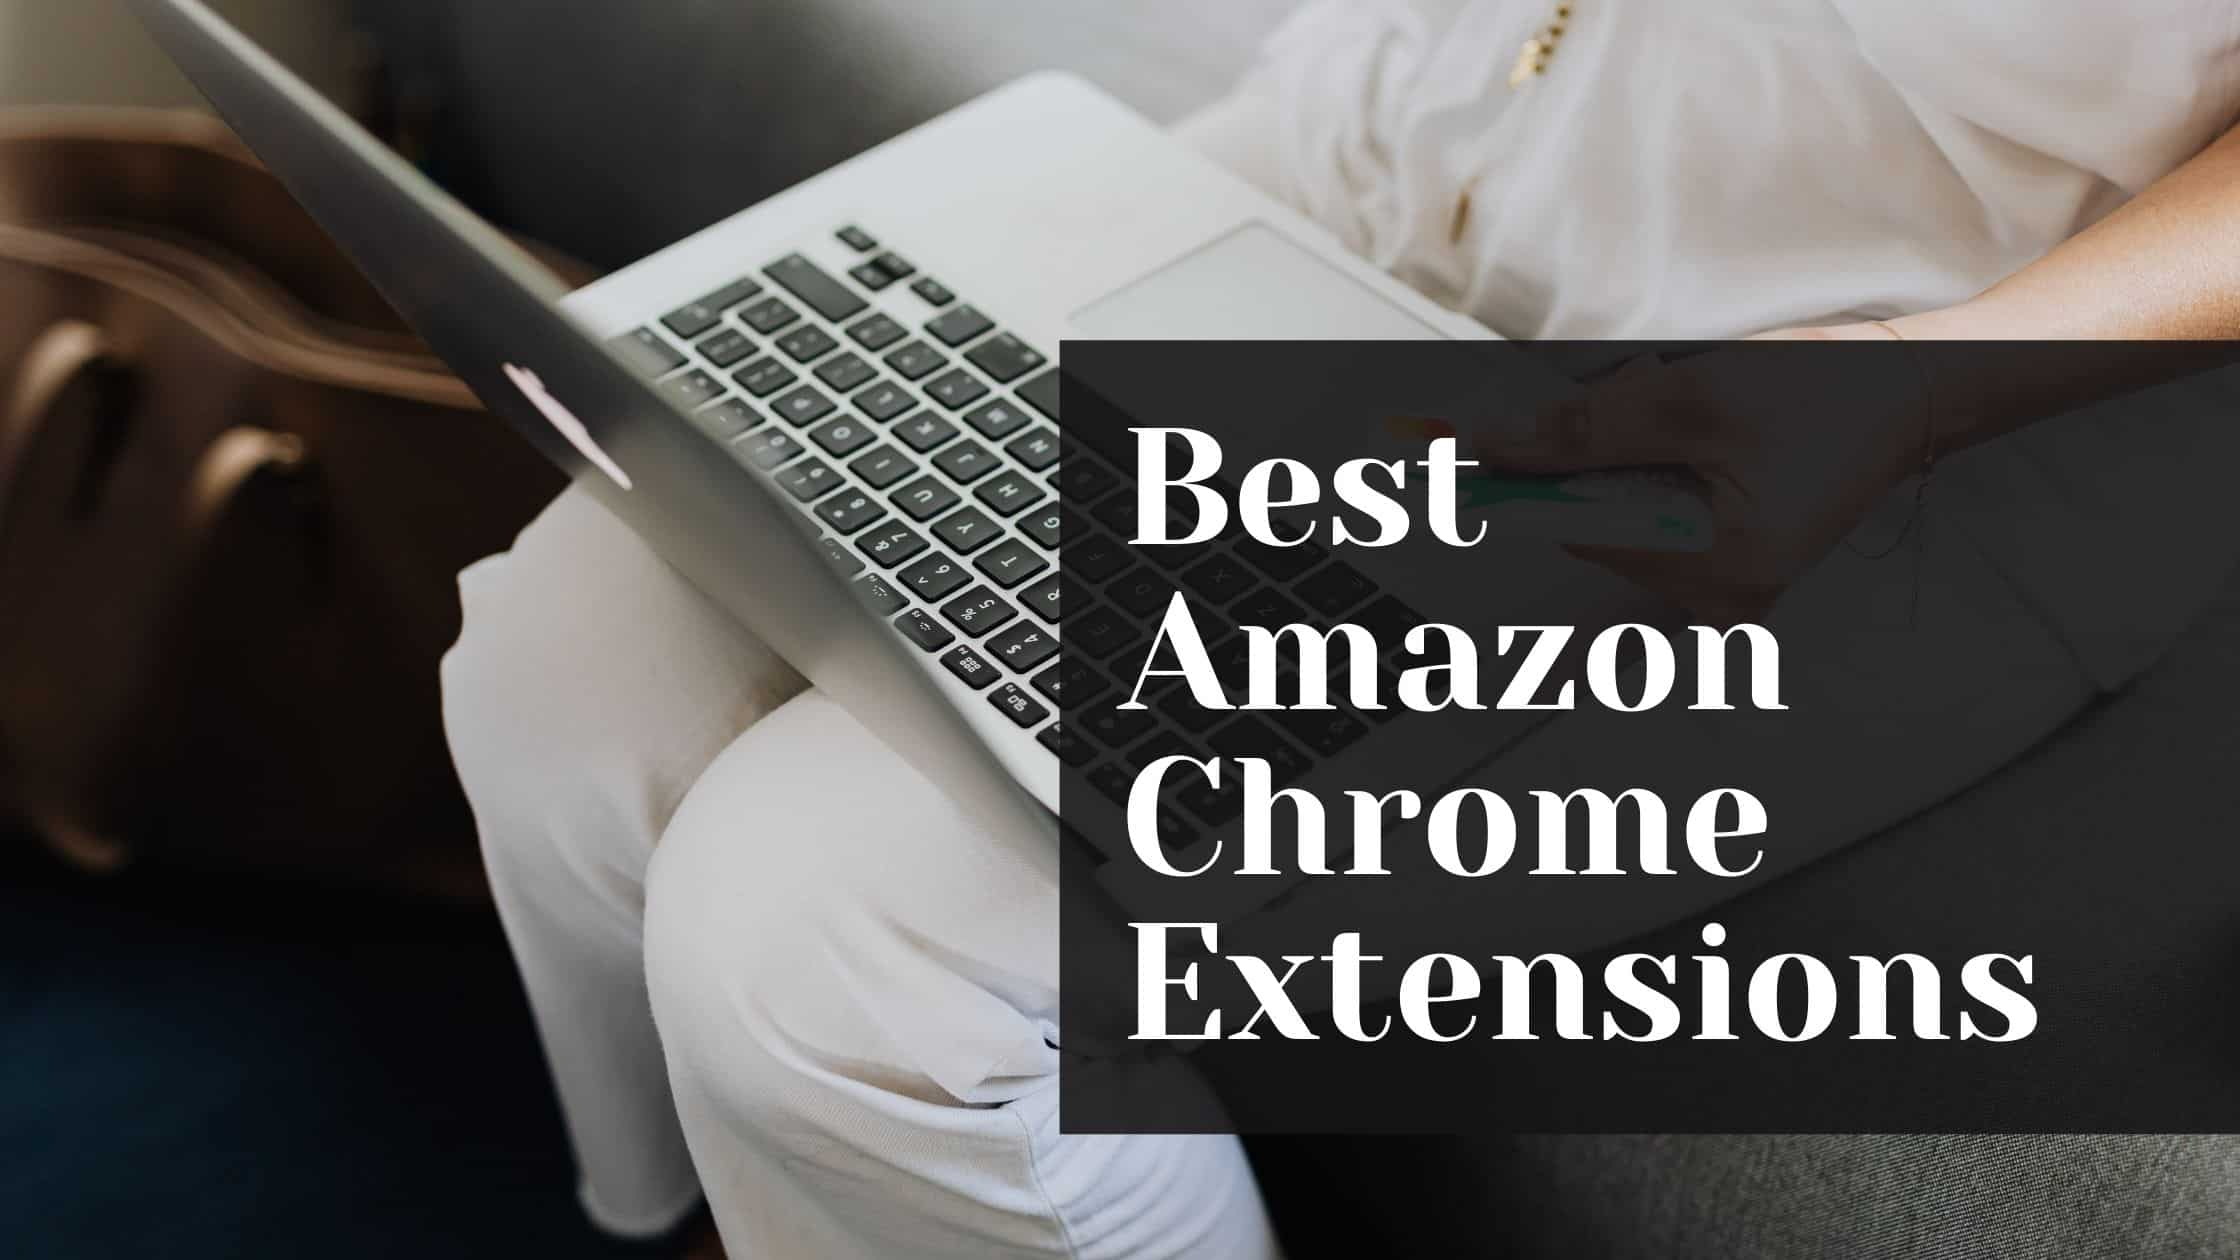 Best Amazon Chrome Extensions 2021 - Every Amazon Seller Must Have